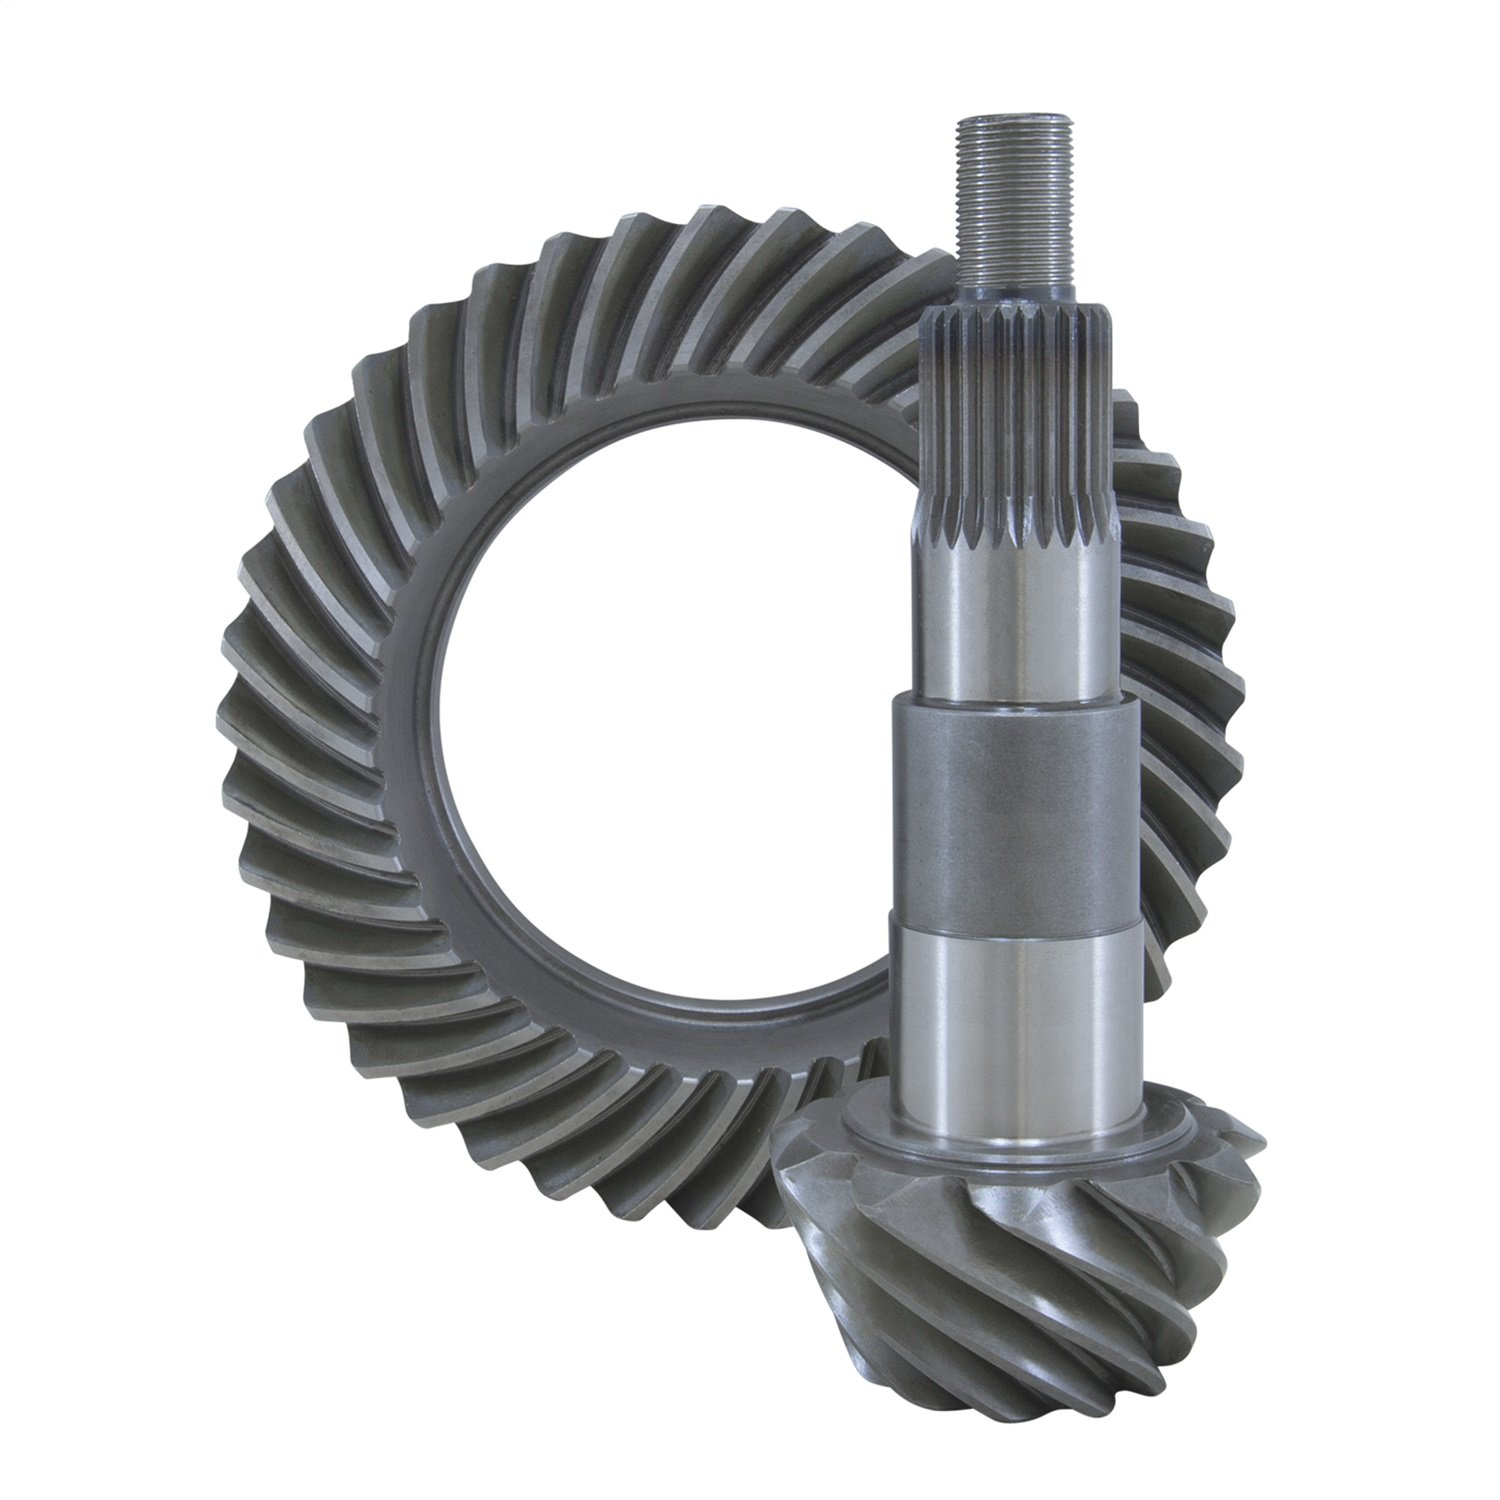 USA Standard Gear (ZG F7.5-411) Ring & Pinion Gear Set for Ford 7.5 Differential